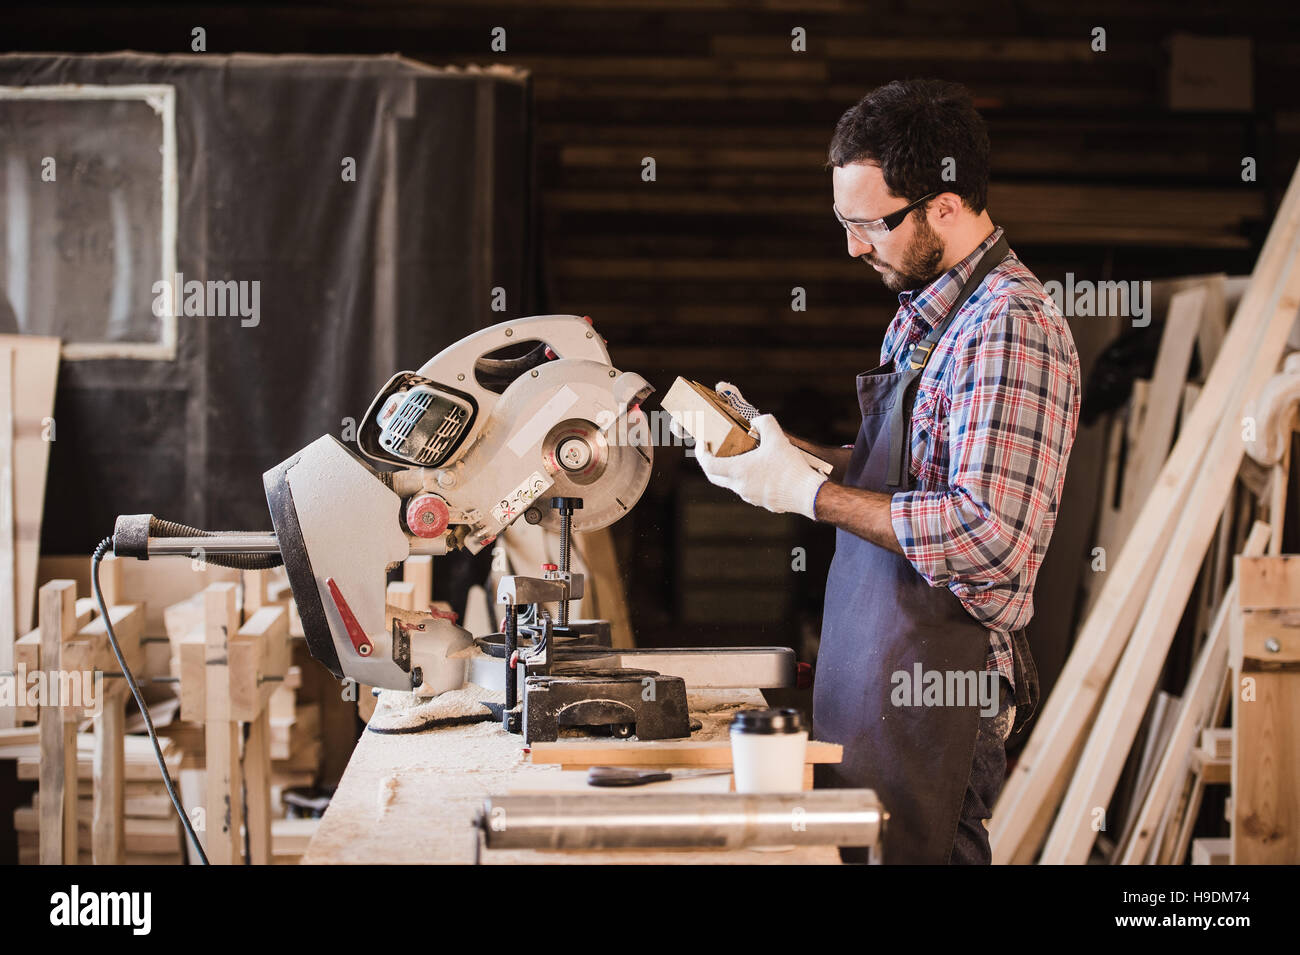 profession, carpentry, woodwork people concept - carpenter with wood plank and notebook checking his notes at workshop - Stock Image